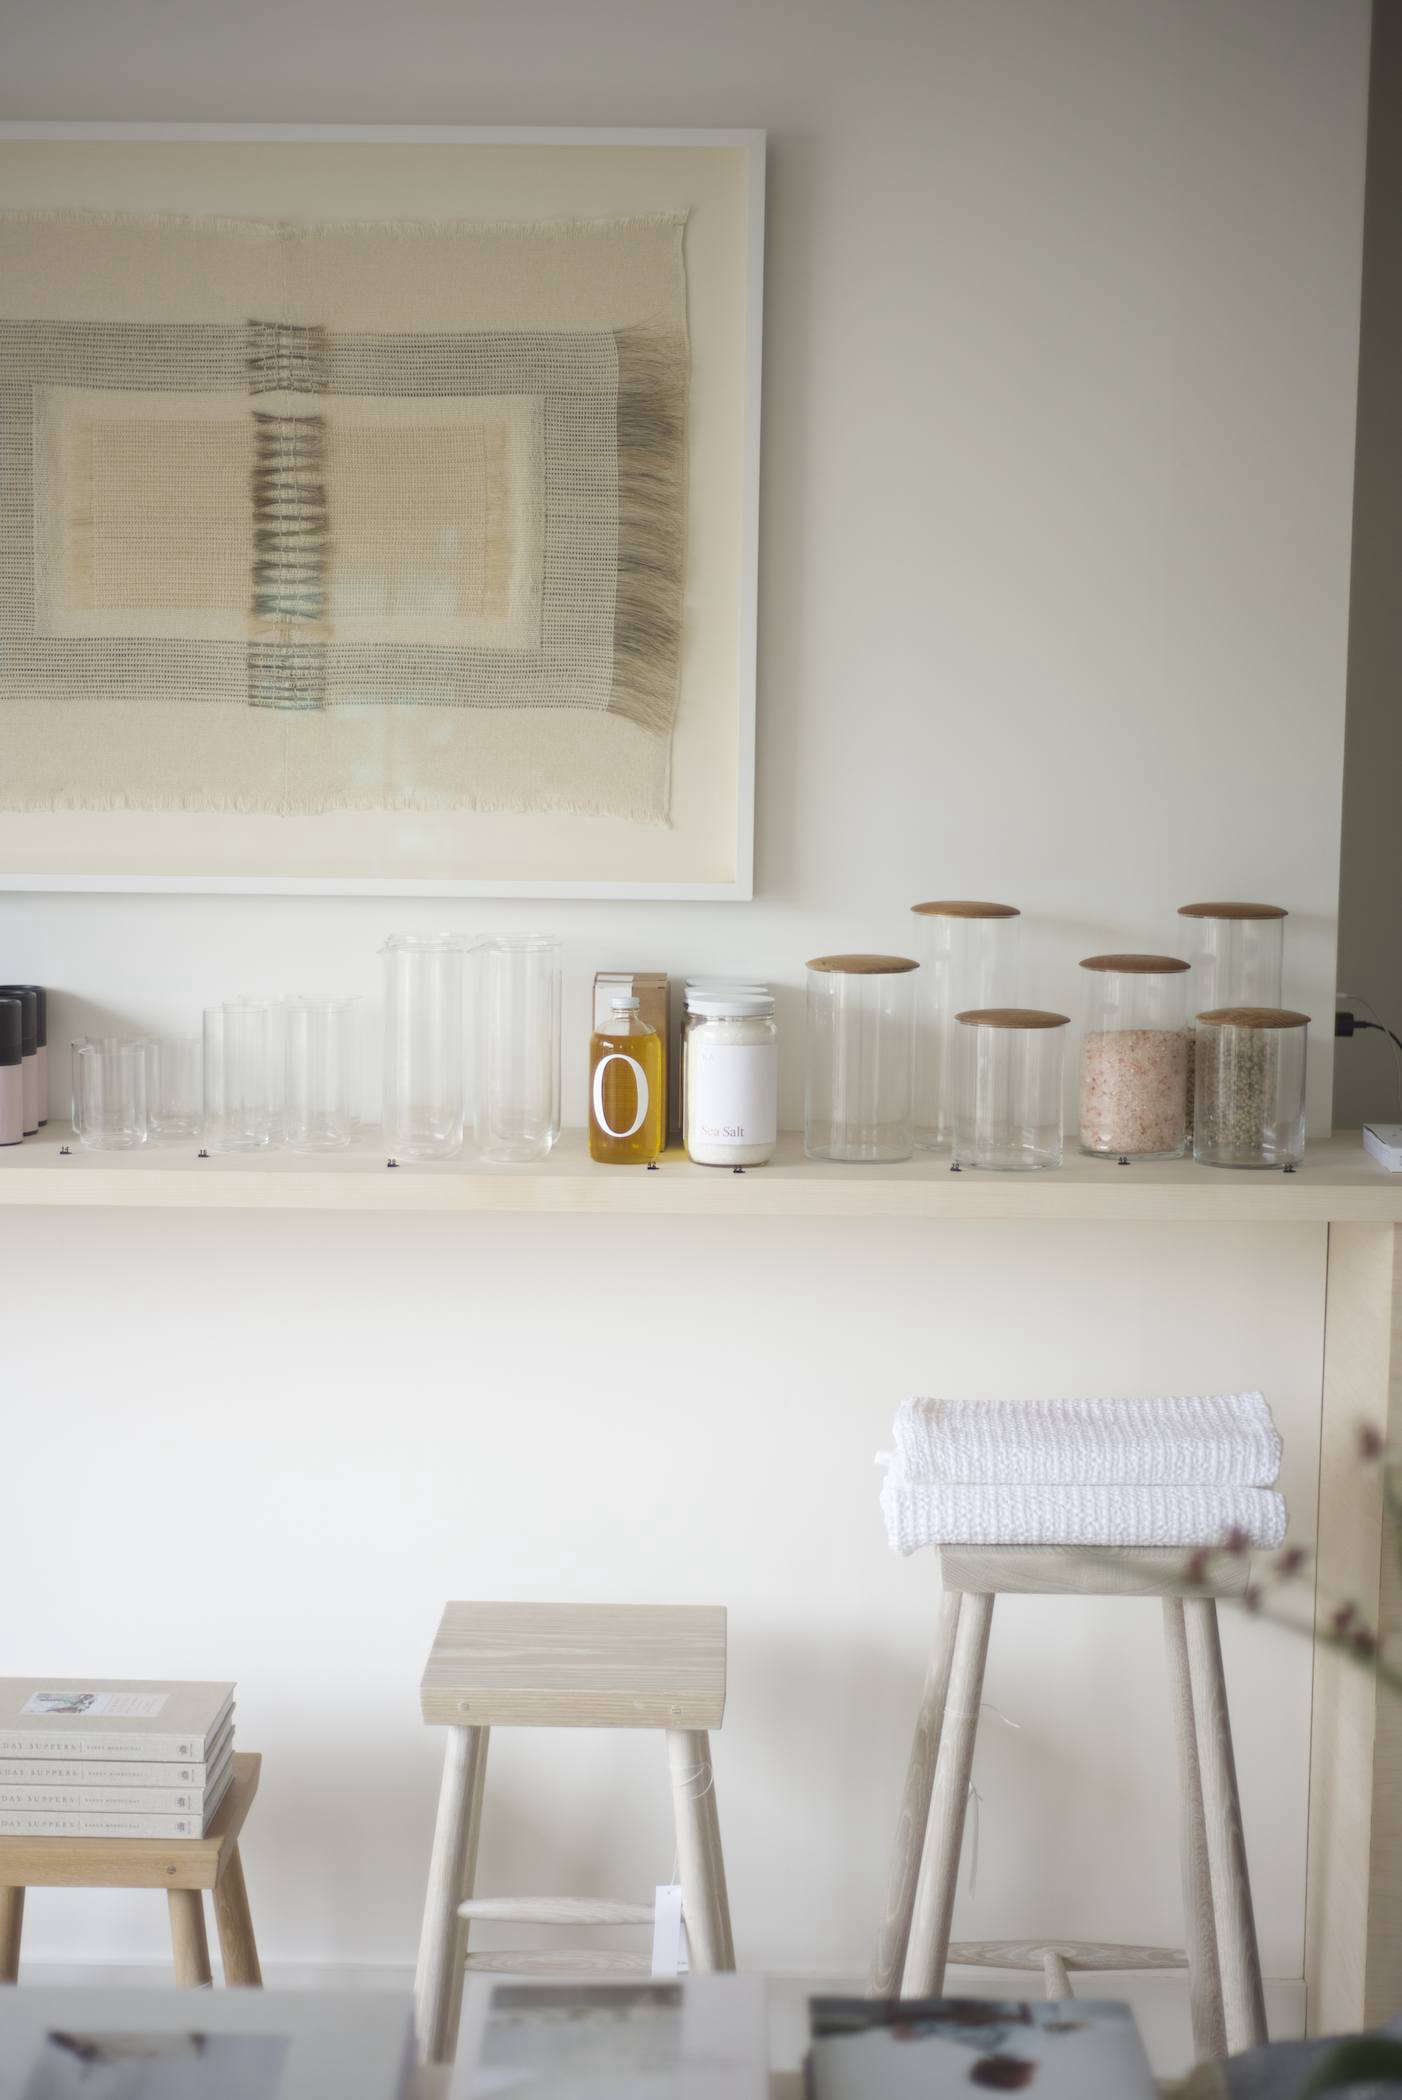 """I don't think homes should be cluttered with things, so I really aim to buy items for the store that are functional, simple, and beautiful,"" said Michaan."